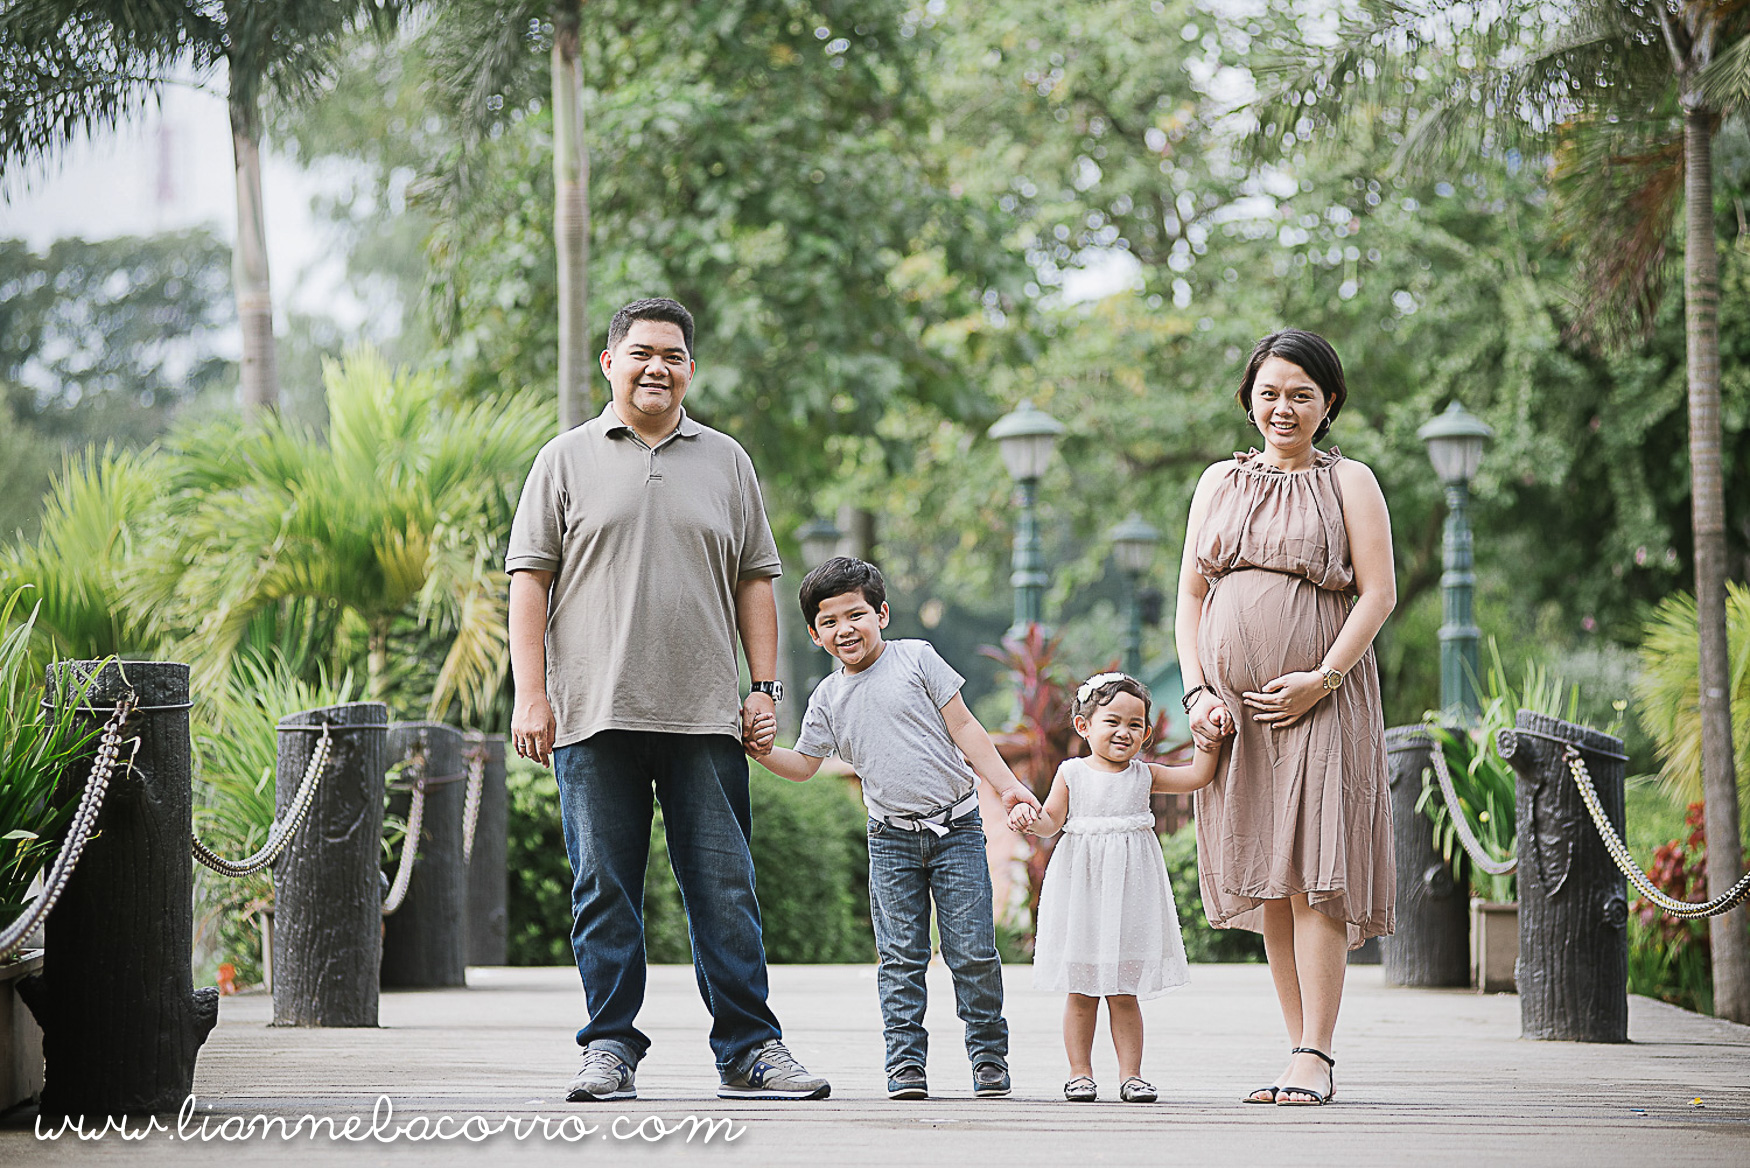 Lifestyle Maternity Family Photography by Lianne Bacorro-8